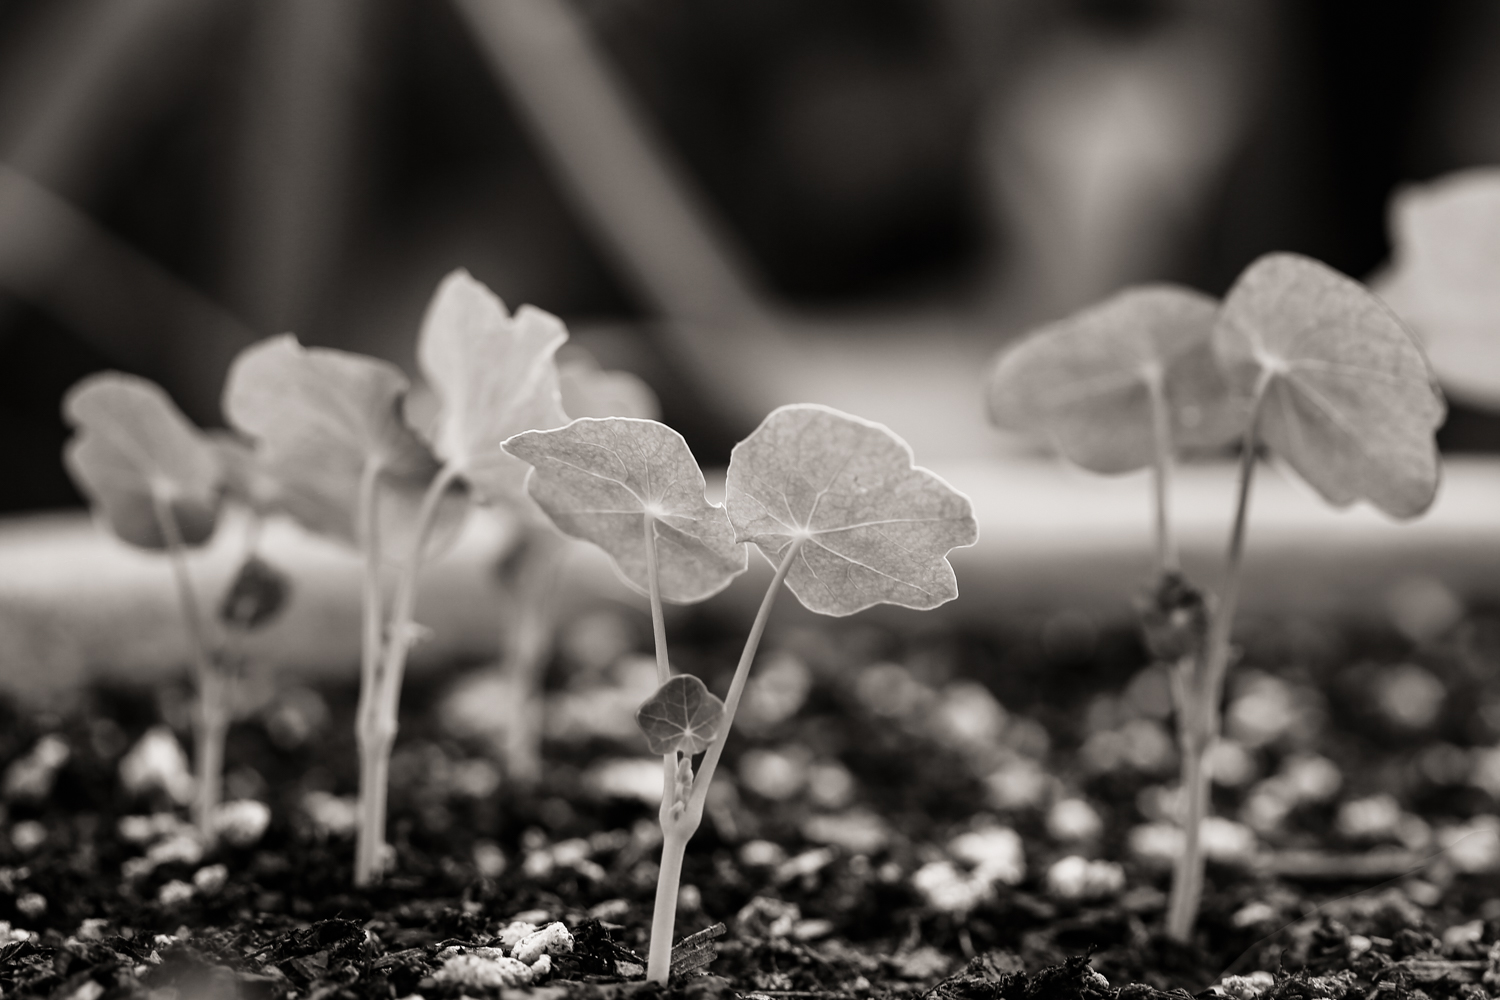 Baby nasturtiums, from the Gardenscapes portfolio